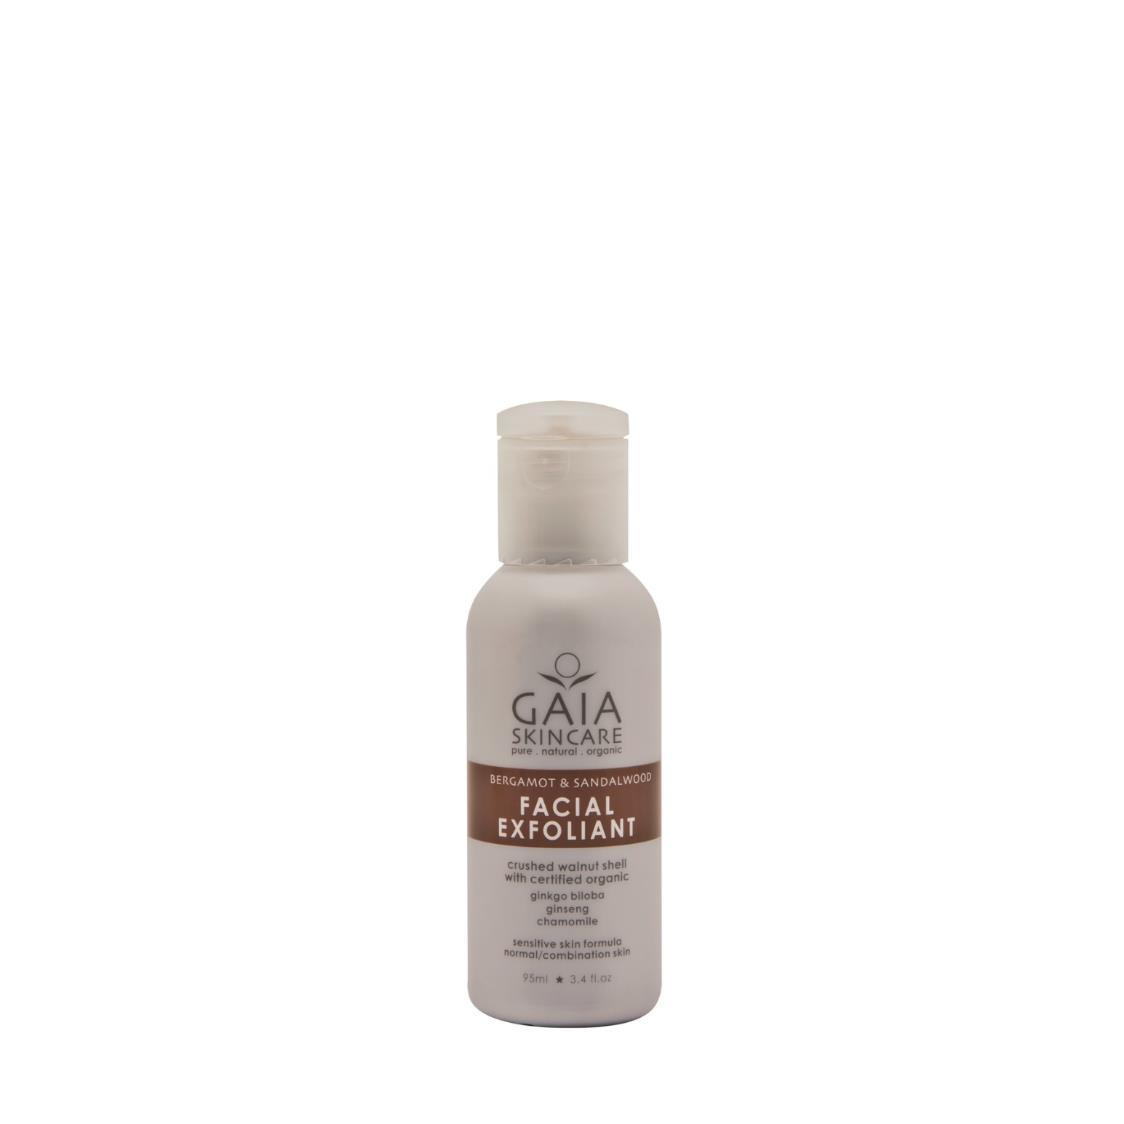 GAIA Facial Exfoliant